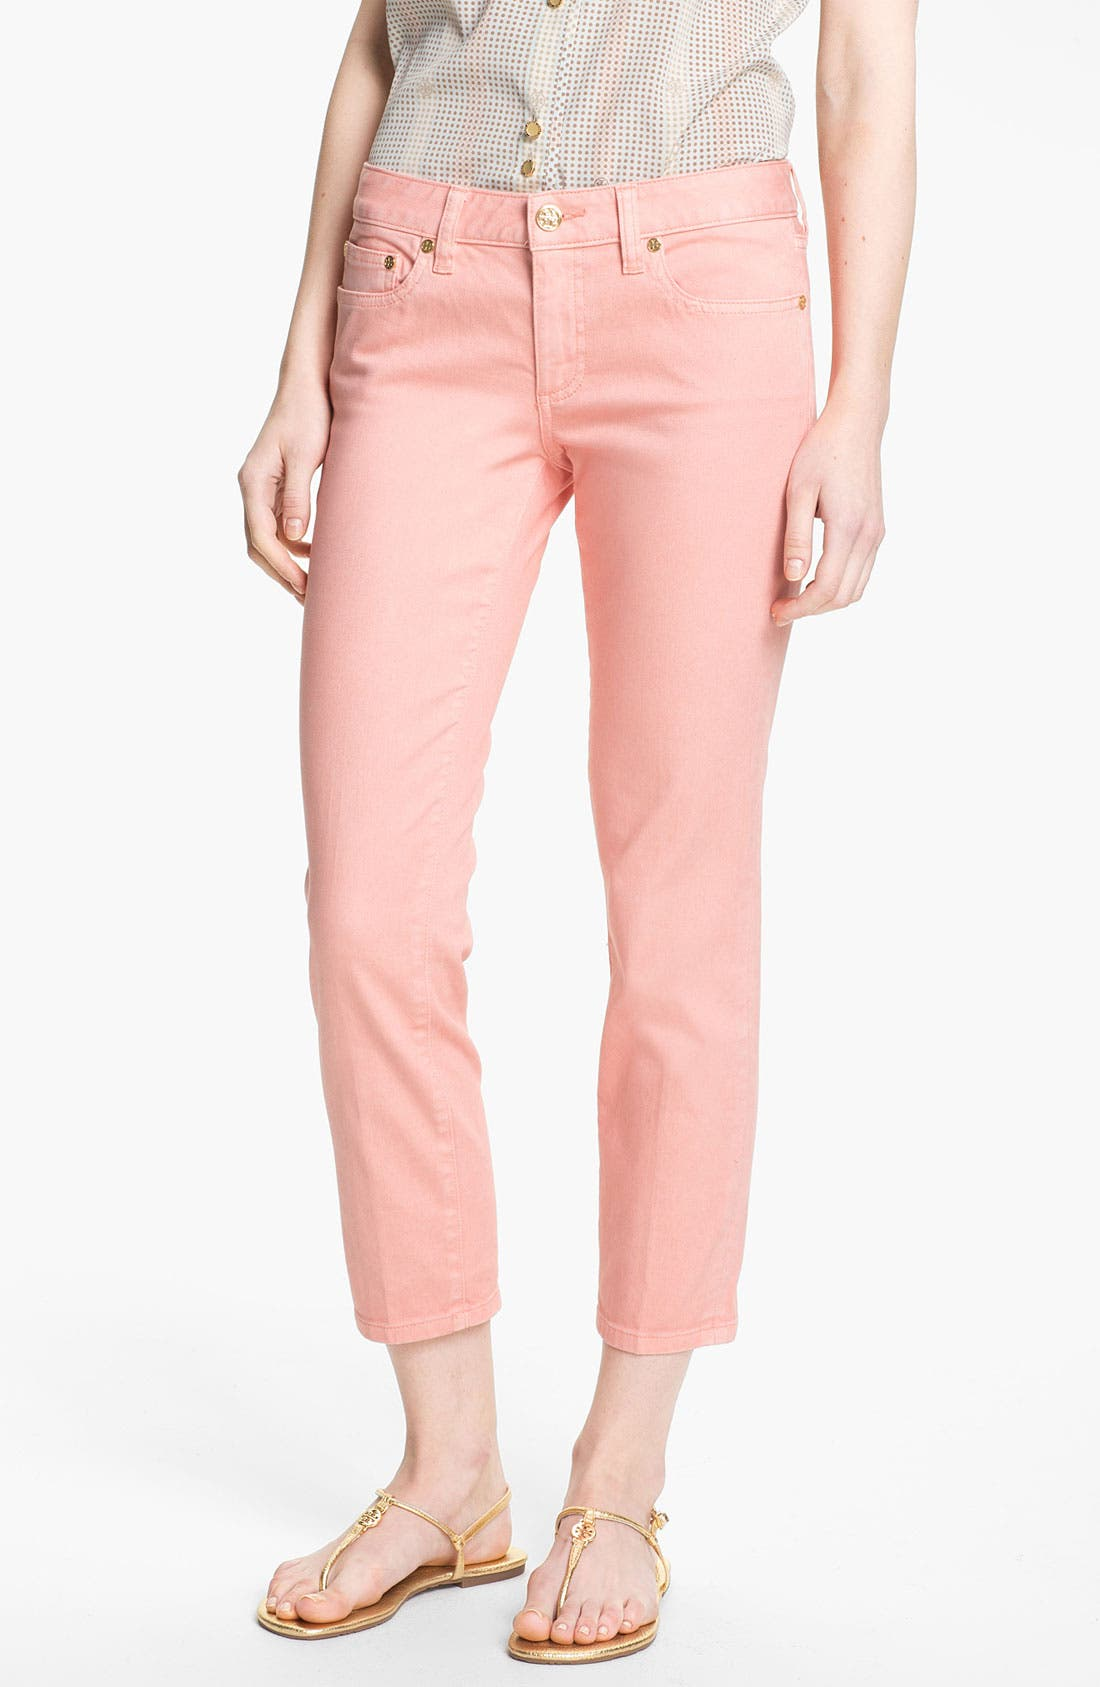 Alternate Image 1 Selected - Tory Burch 'Alexa' Crop Skinny Stretch Jeans (Light Coral)